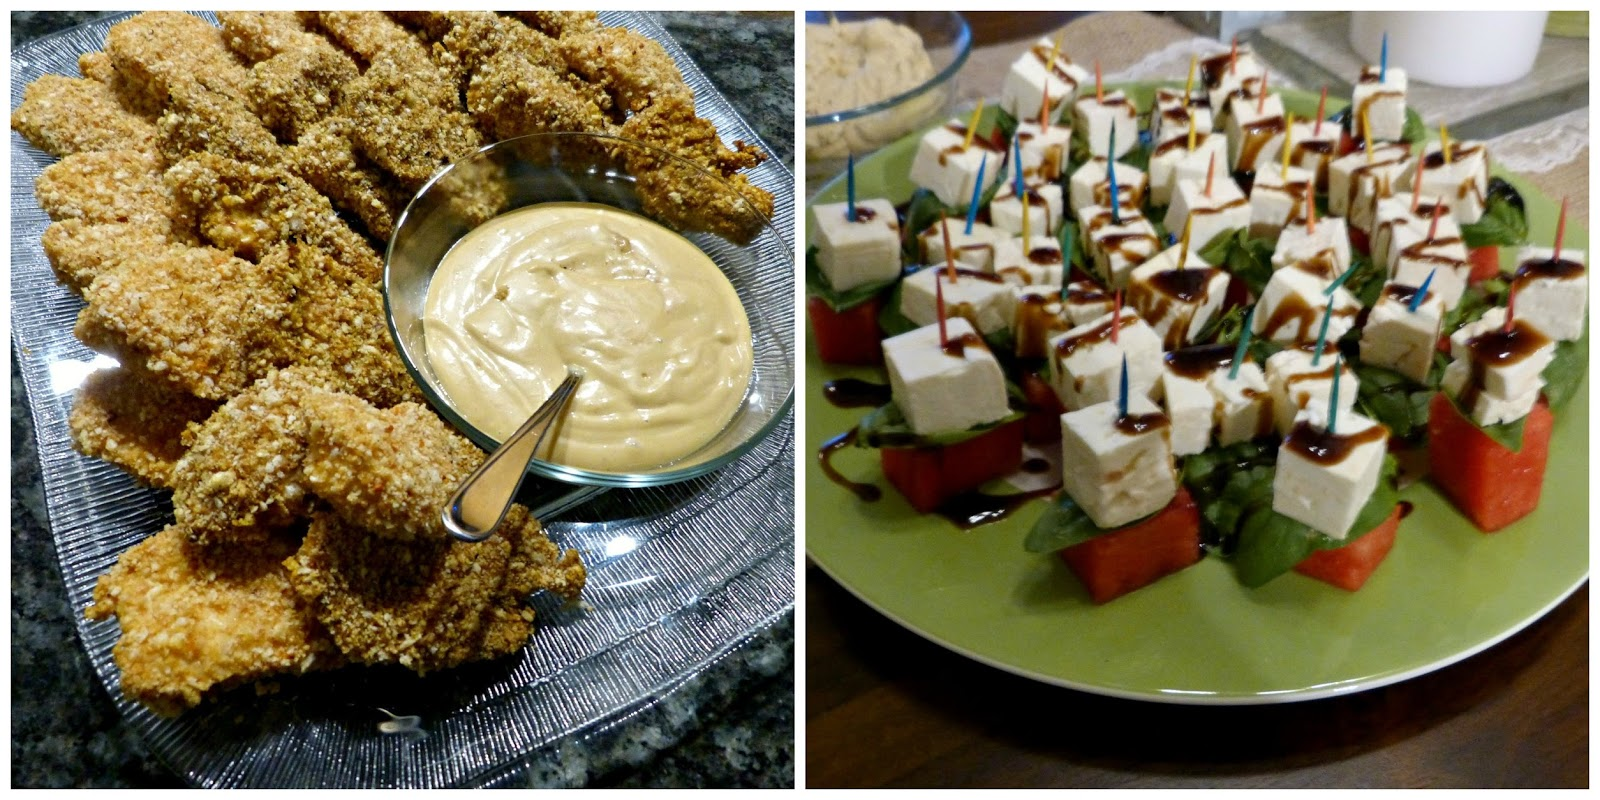 Instead it needed to be small bites and foods that are easy for guests to help themselves to or to eat off of paper plates while standing and mingling. & A Squared: BBQ Small Plates Party Menu + Watermelon u0026 Feta Bites Recipe